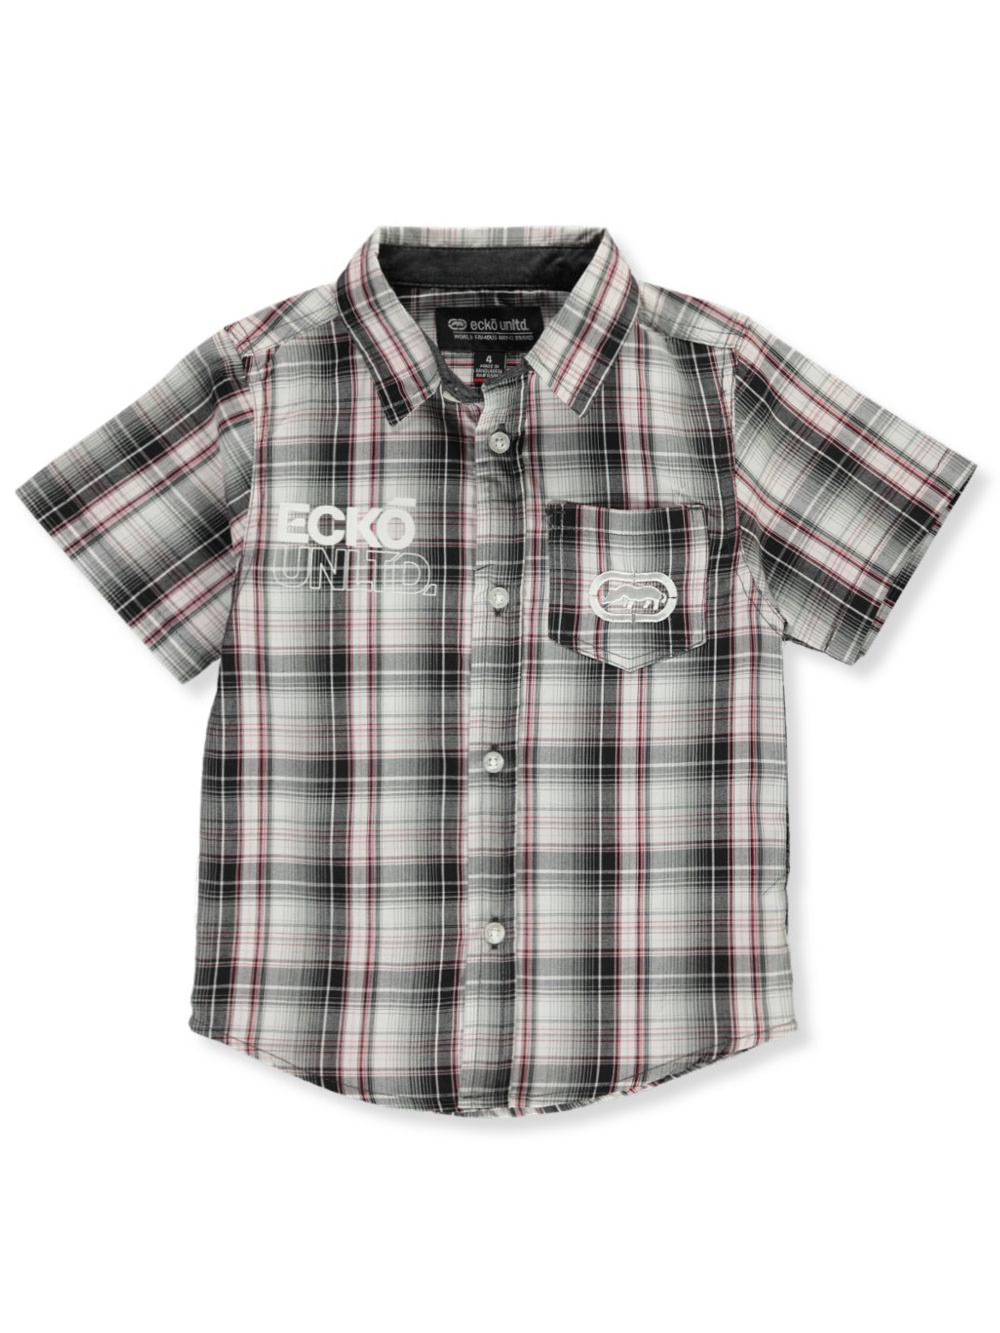 Boys Black Button-Downs